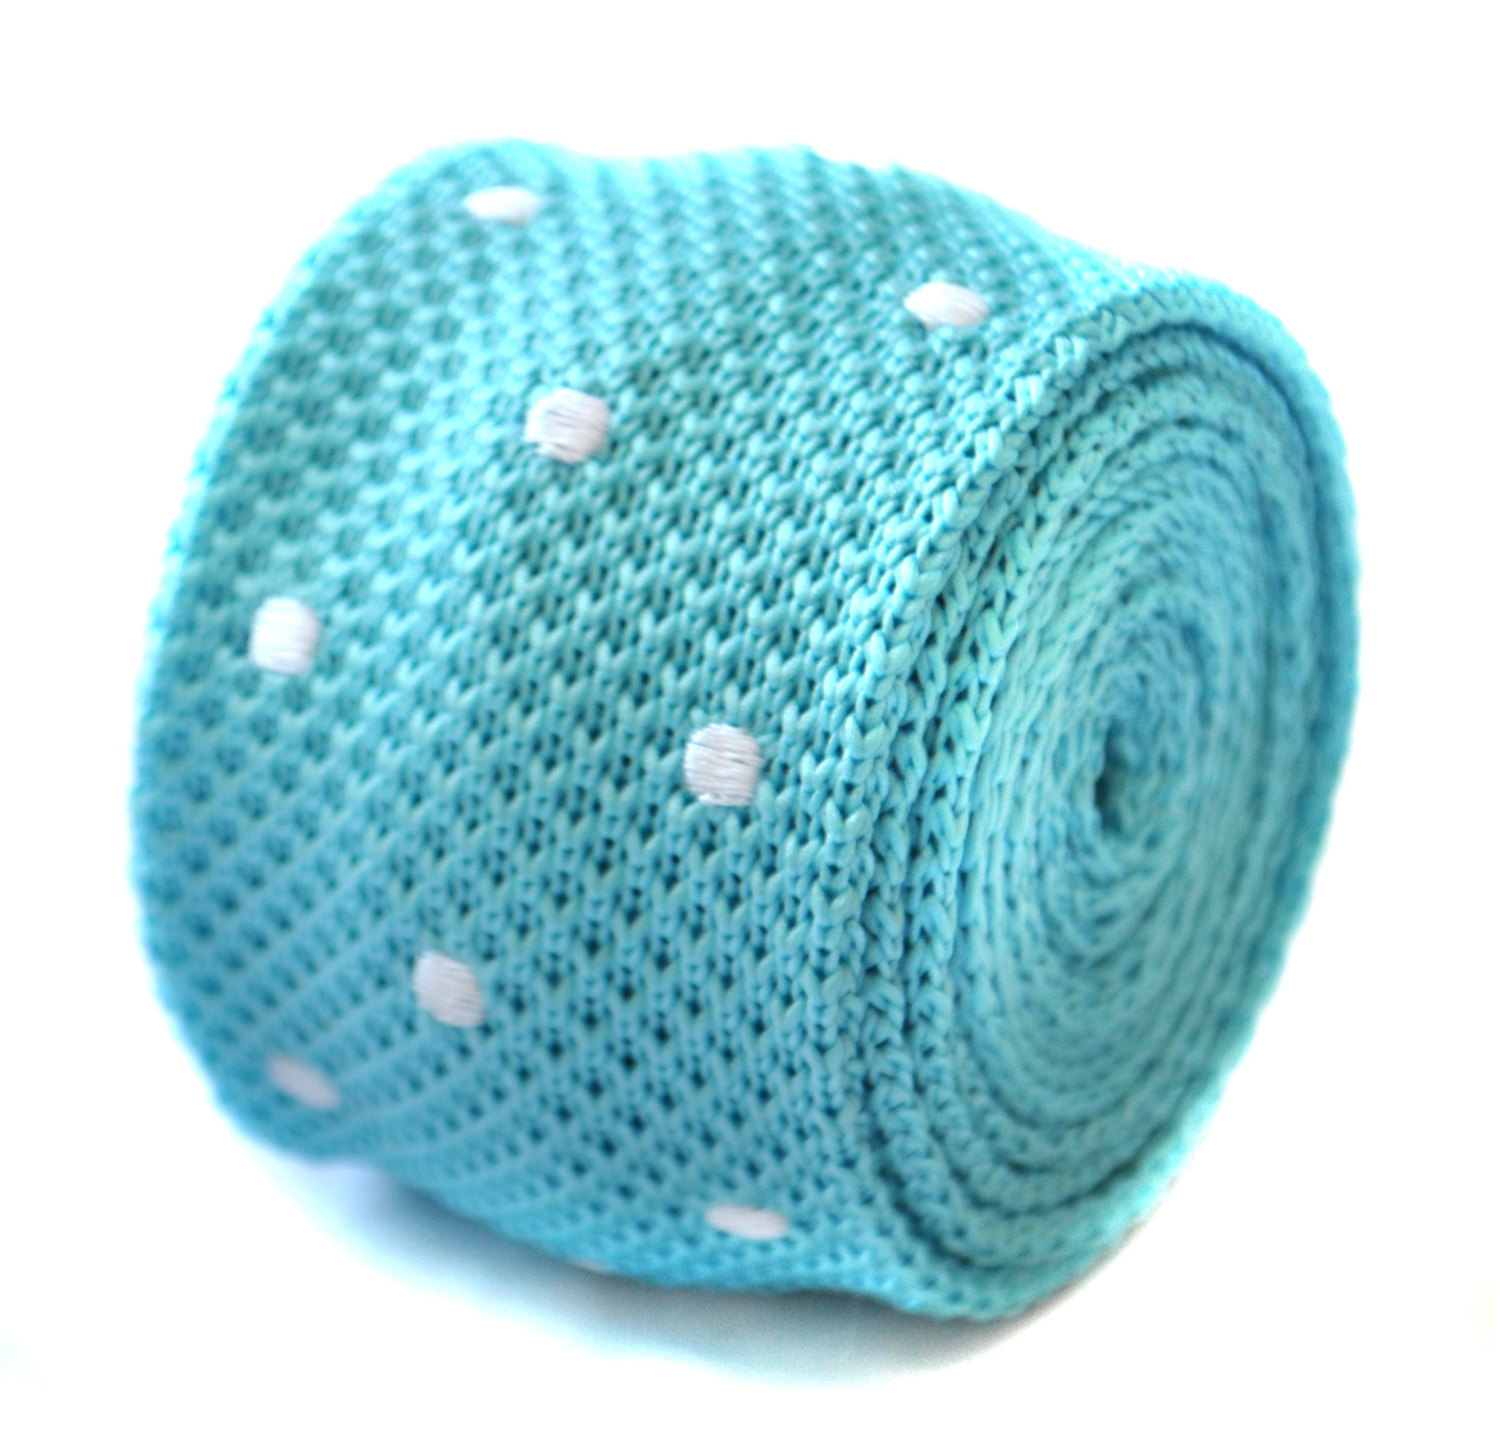 skinny knitted turquoise blue and white polka spot tie by Frederick Thomas FT188